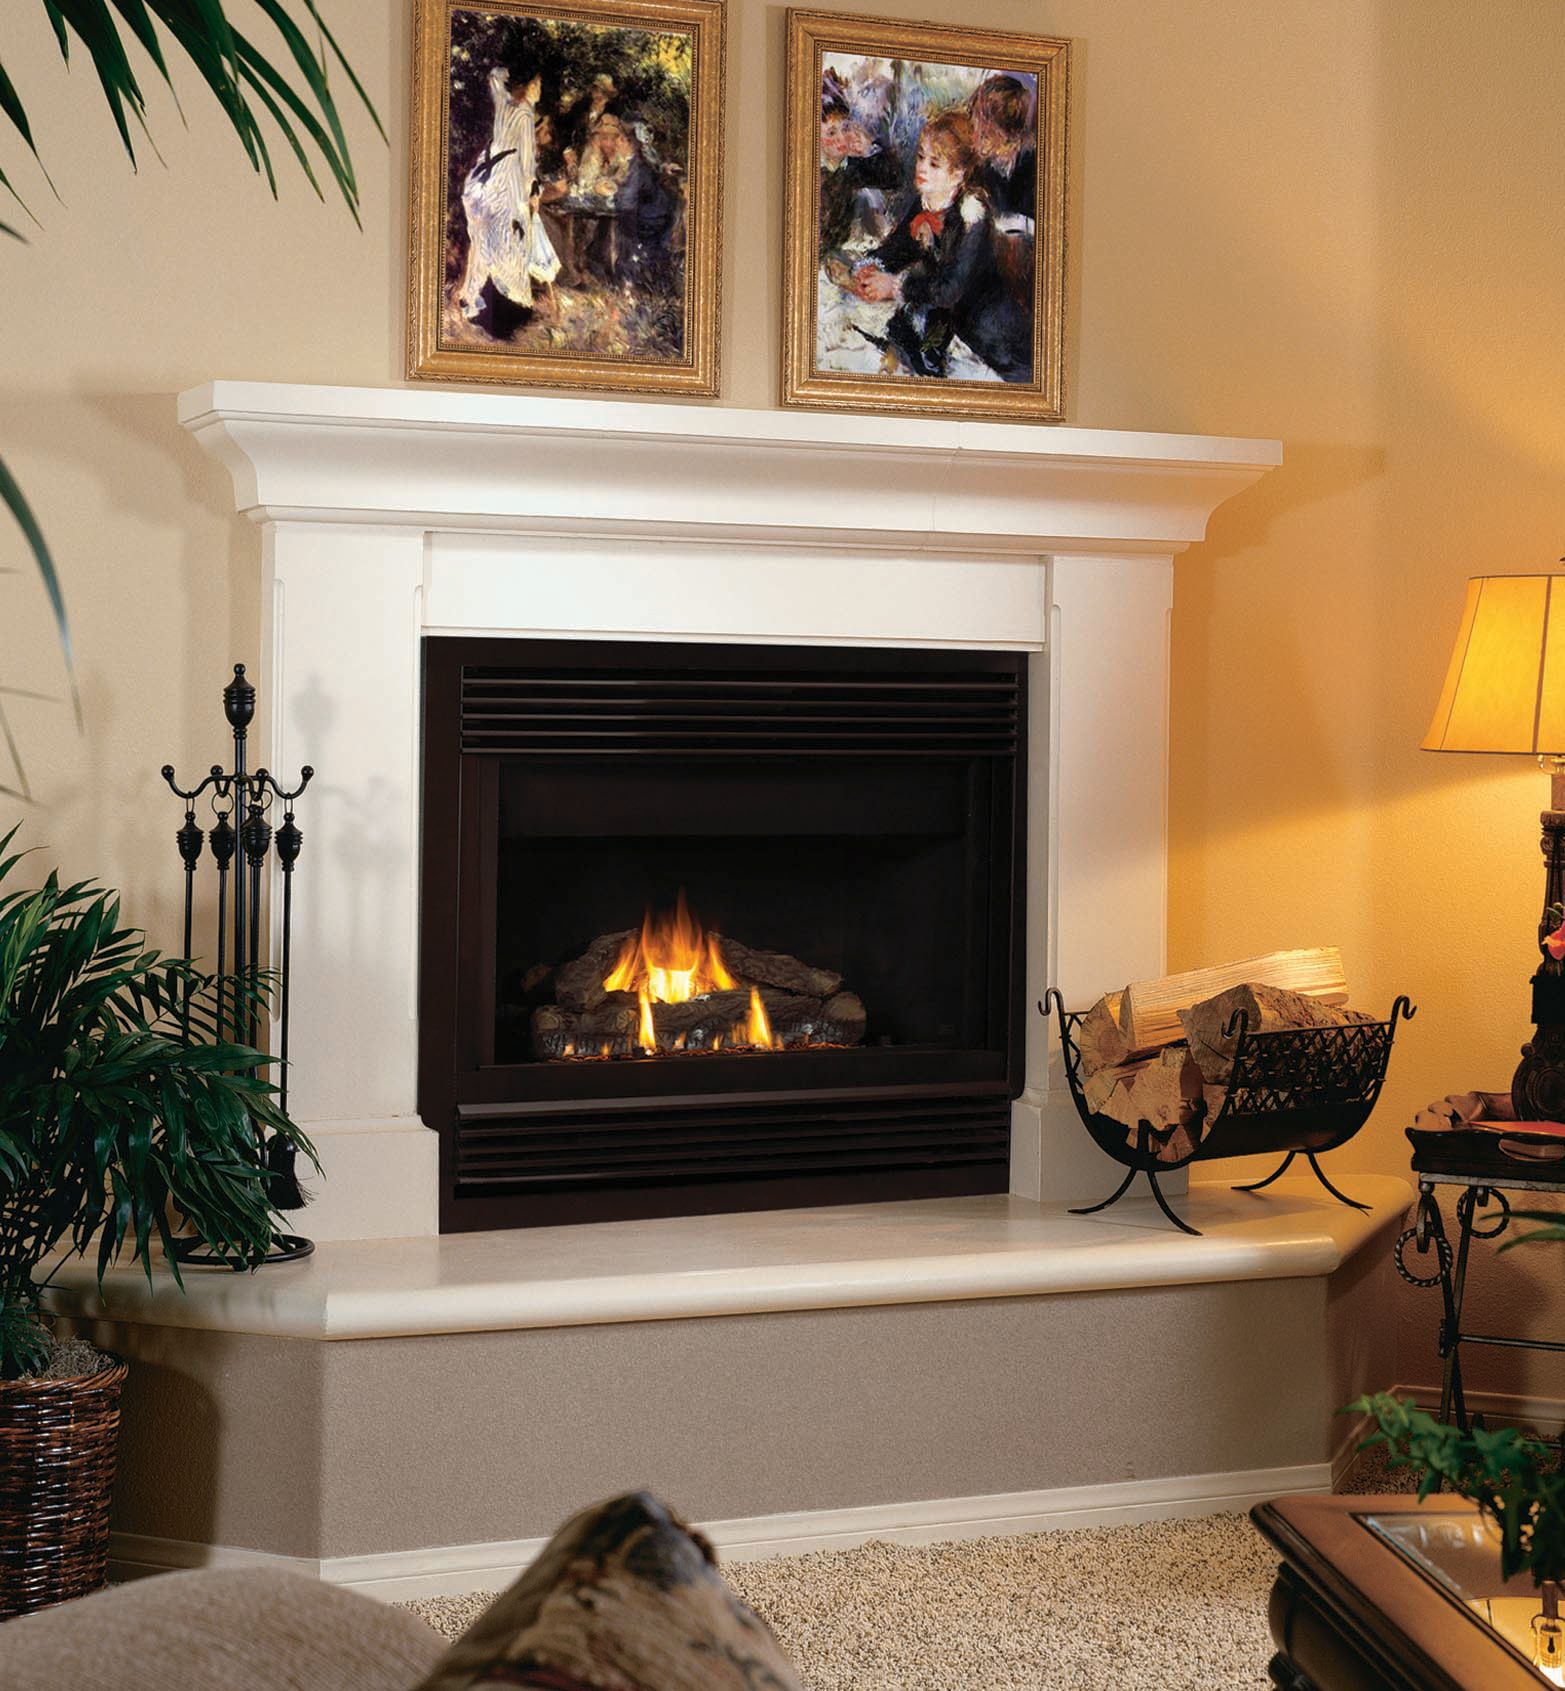 13 best ideas about fireplaces on pinterest ovens fireplace tiles and craftsman